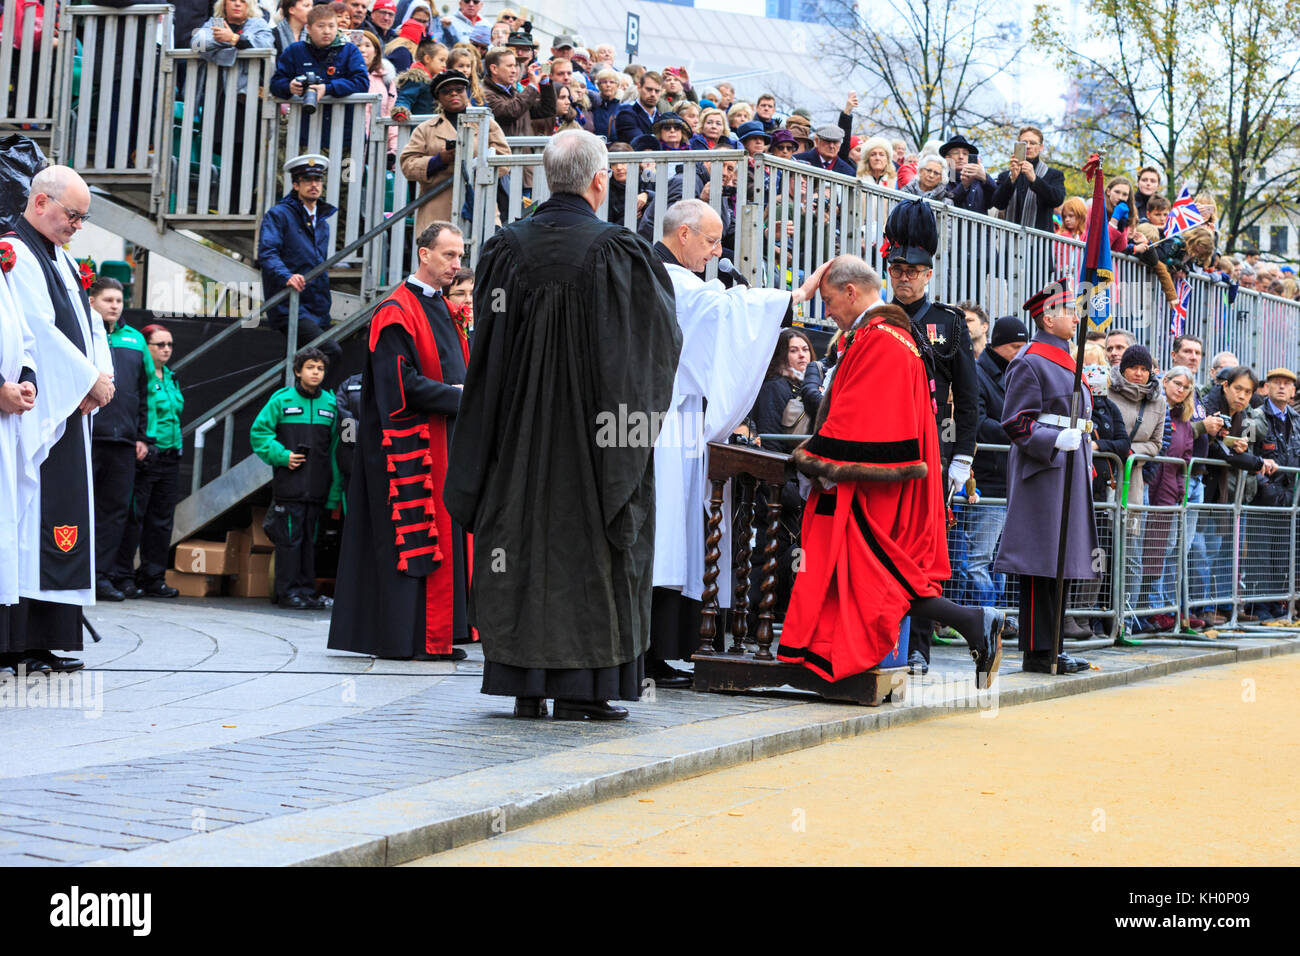 City of London, UK. 11th Nov, 2017. The new Lord Mayor, Charles Bowman is given his blessing by the Dean of St Paul's, - Stock Image